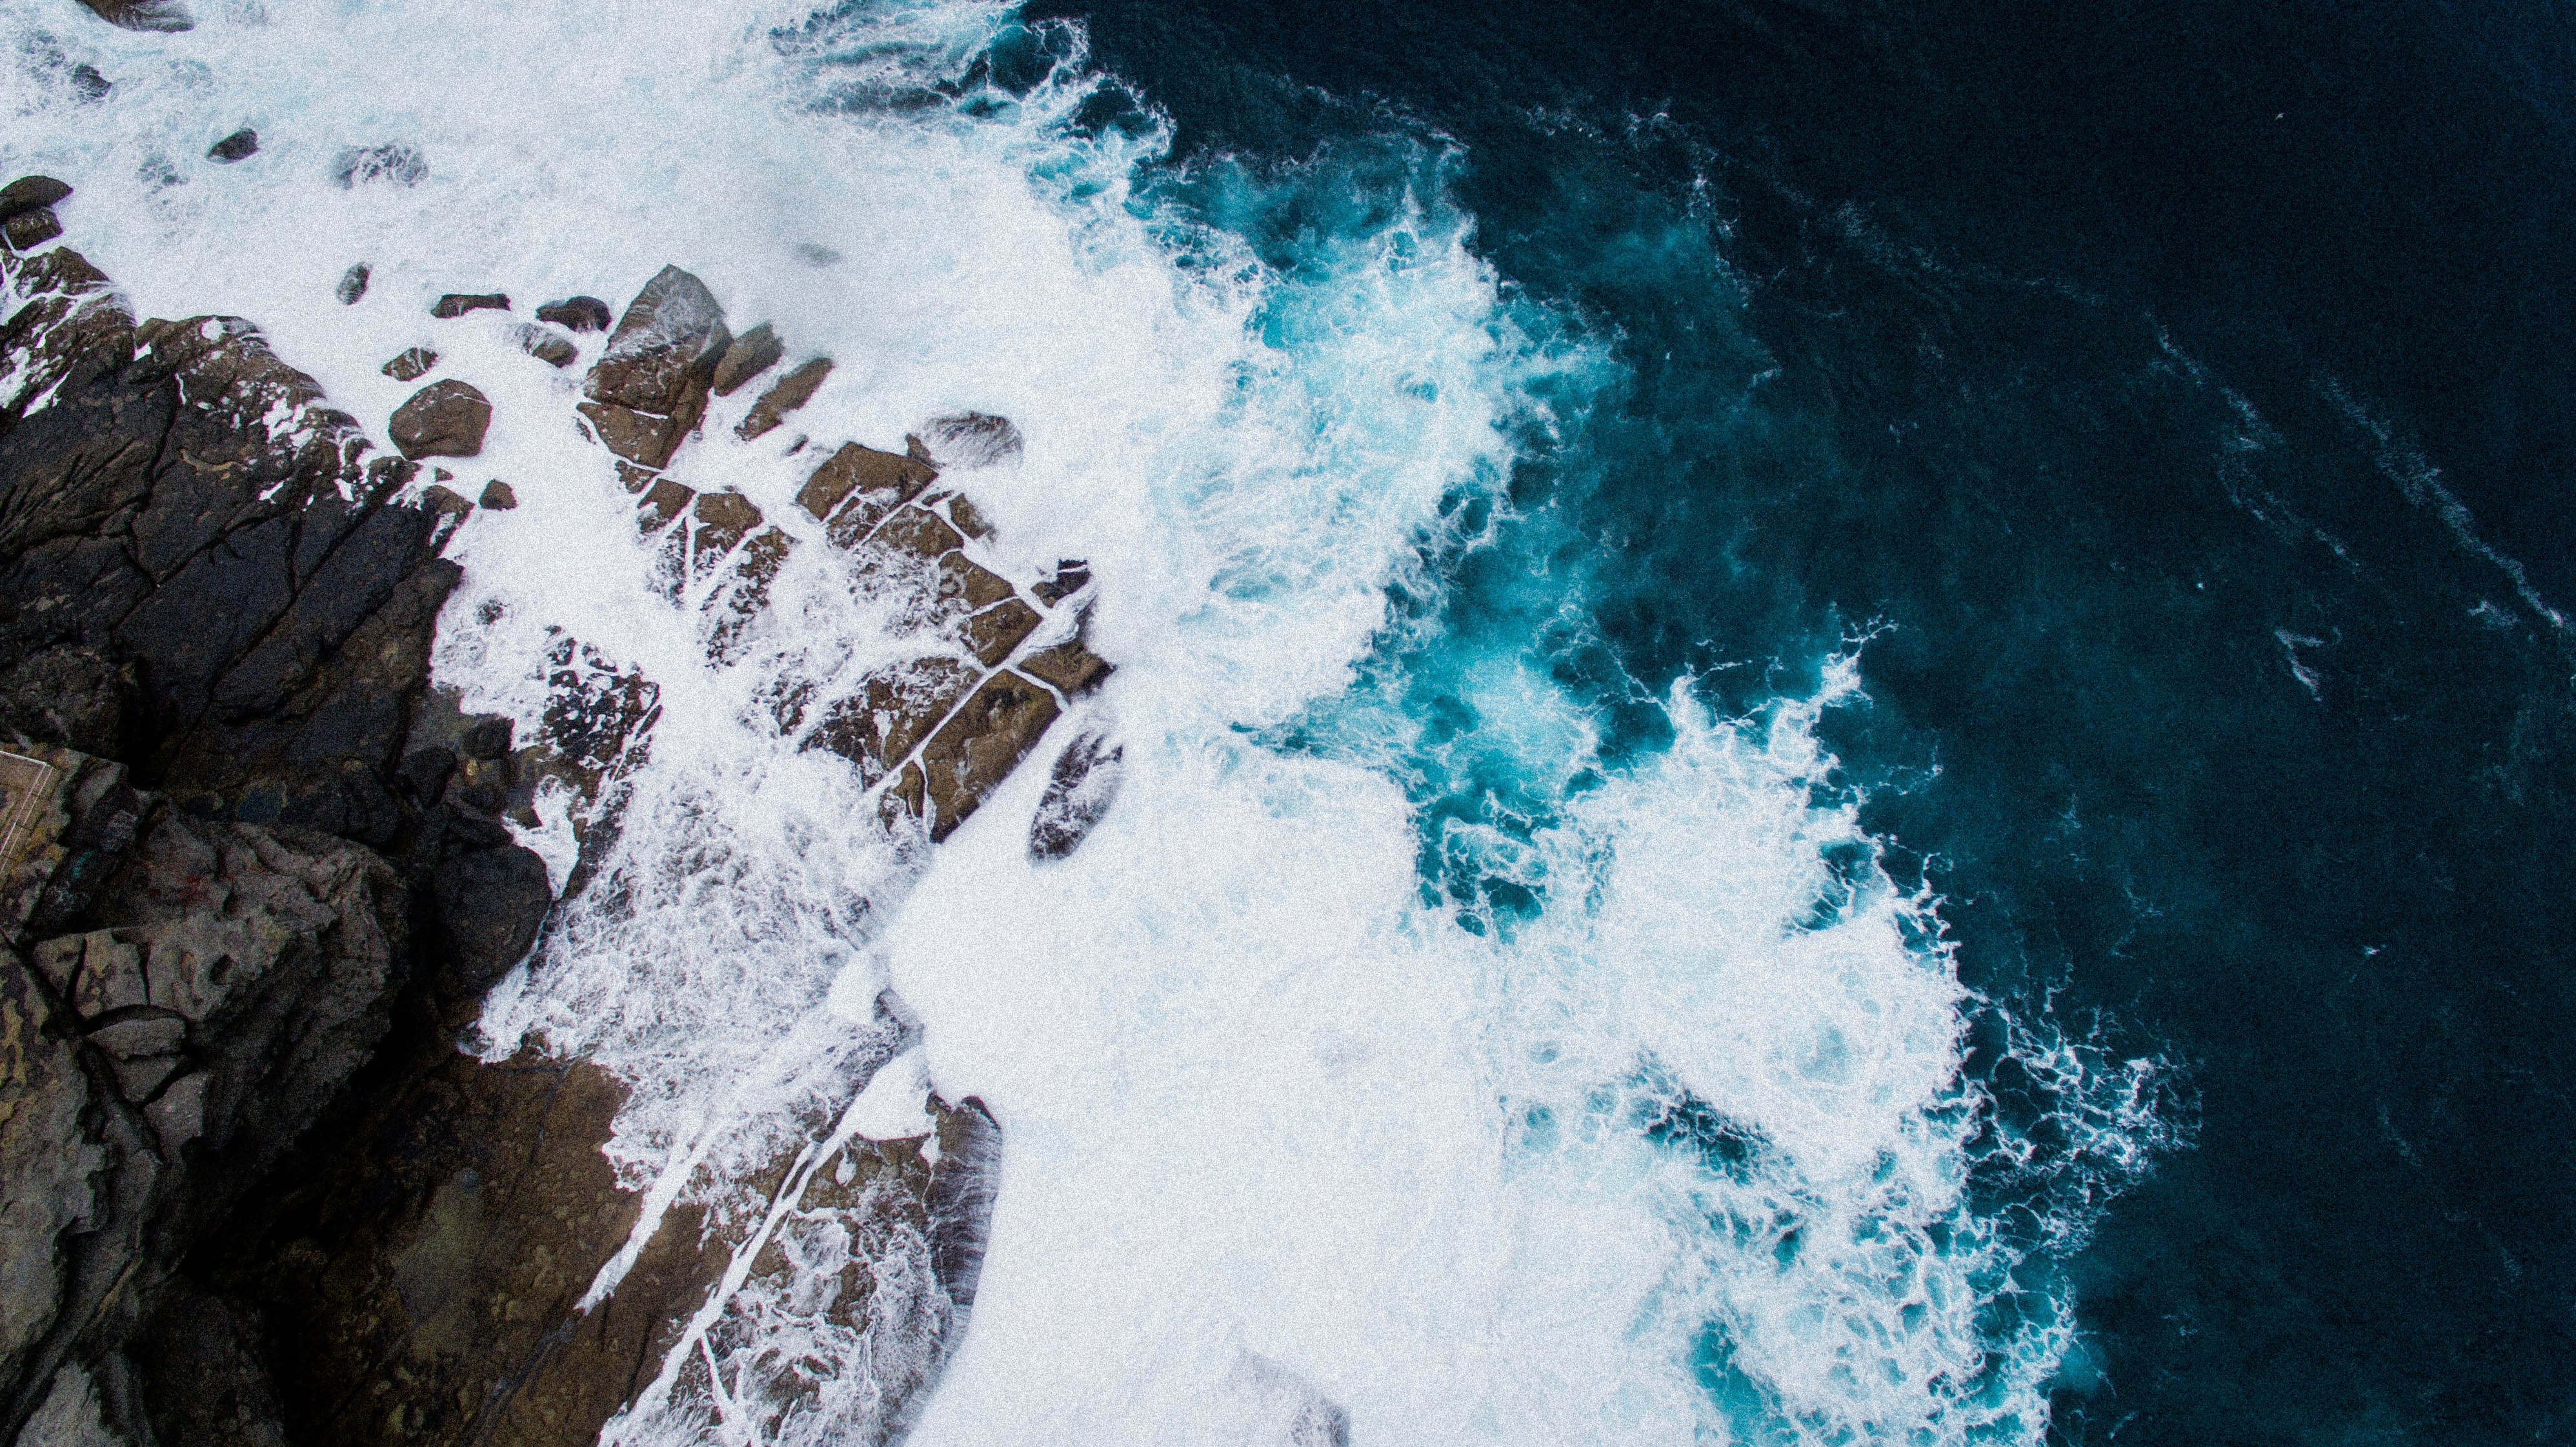 Drone aerial view of the ocean crashing on a rocky Bondi Beach